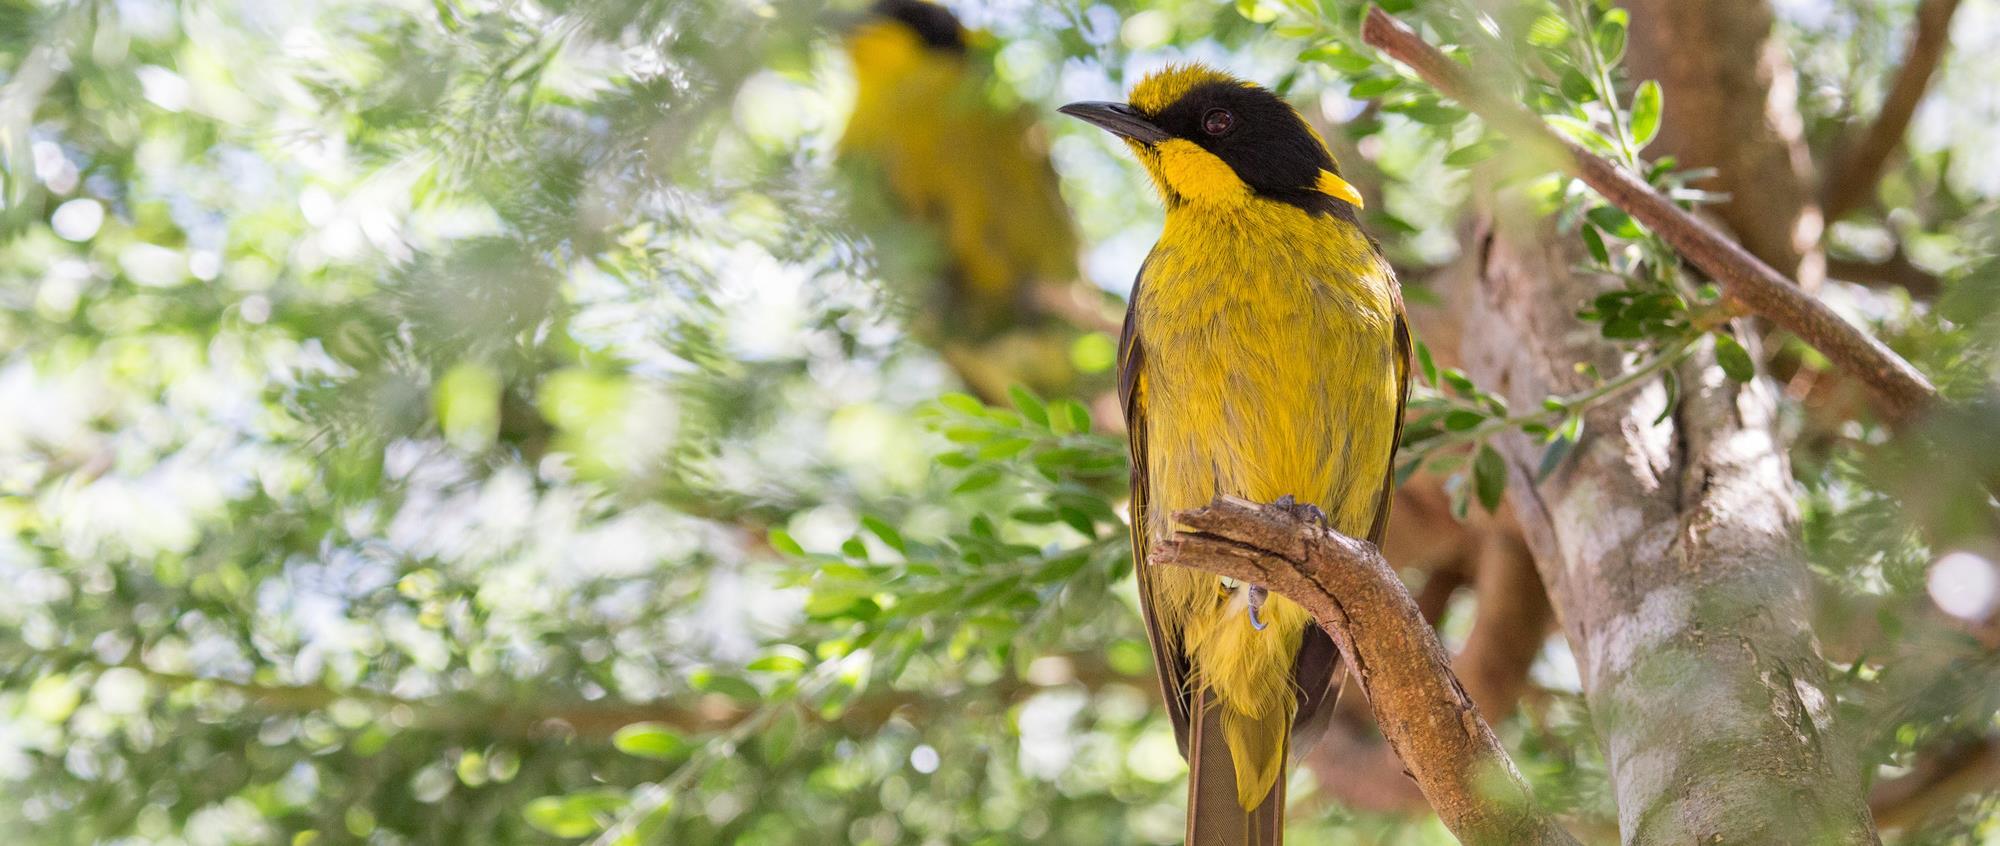 Two Helmeted Honeyeaters on a branch with sun glistening through the leaves